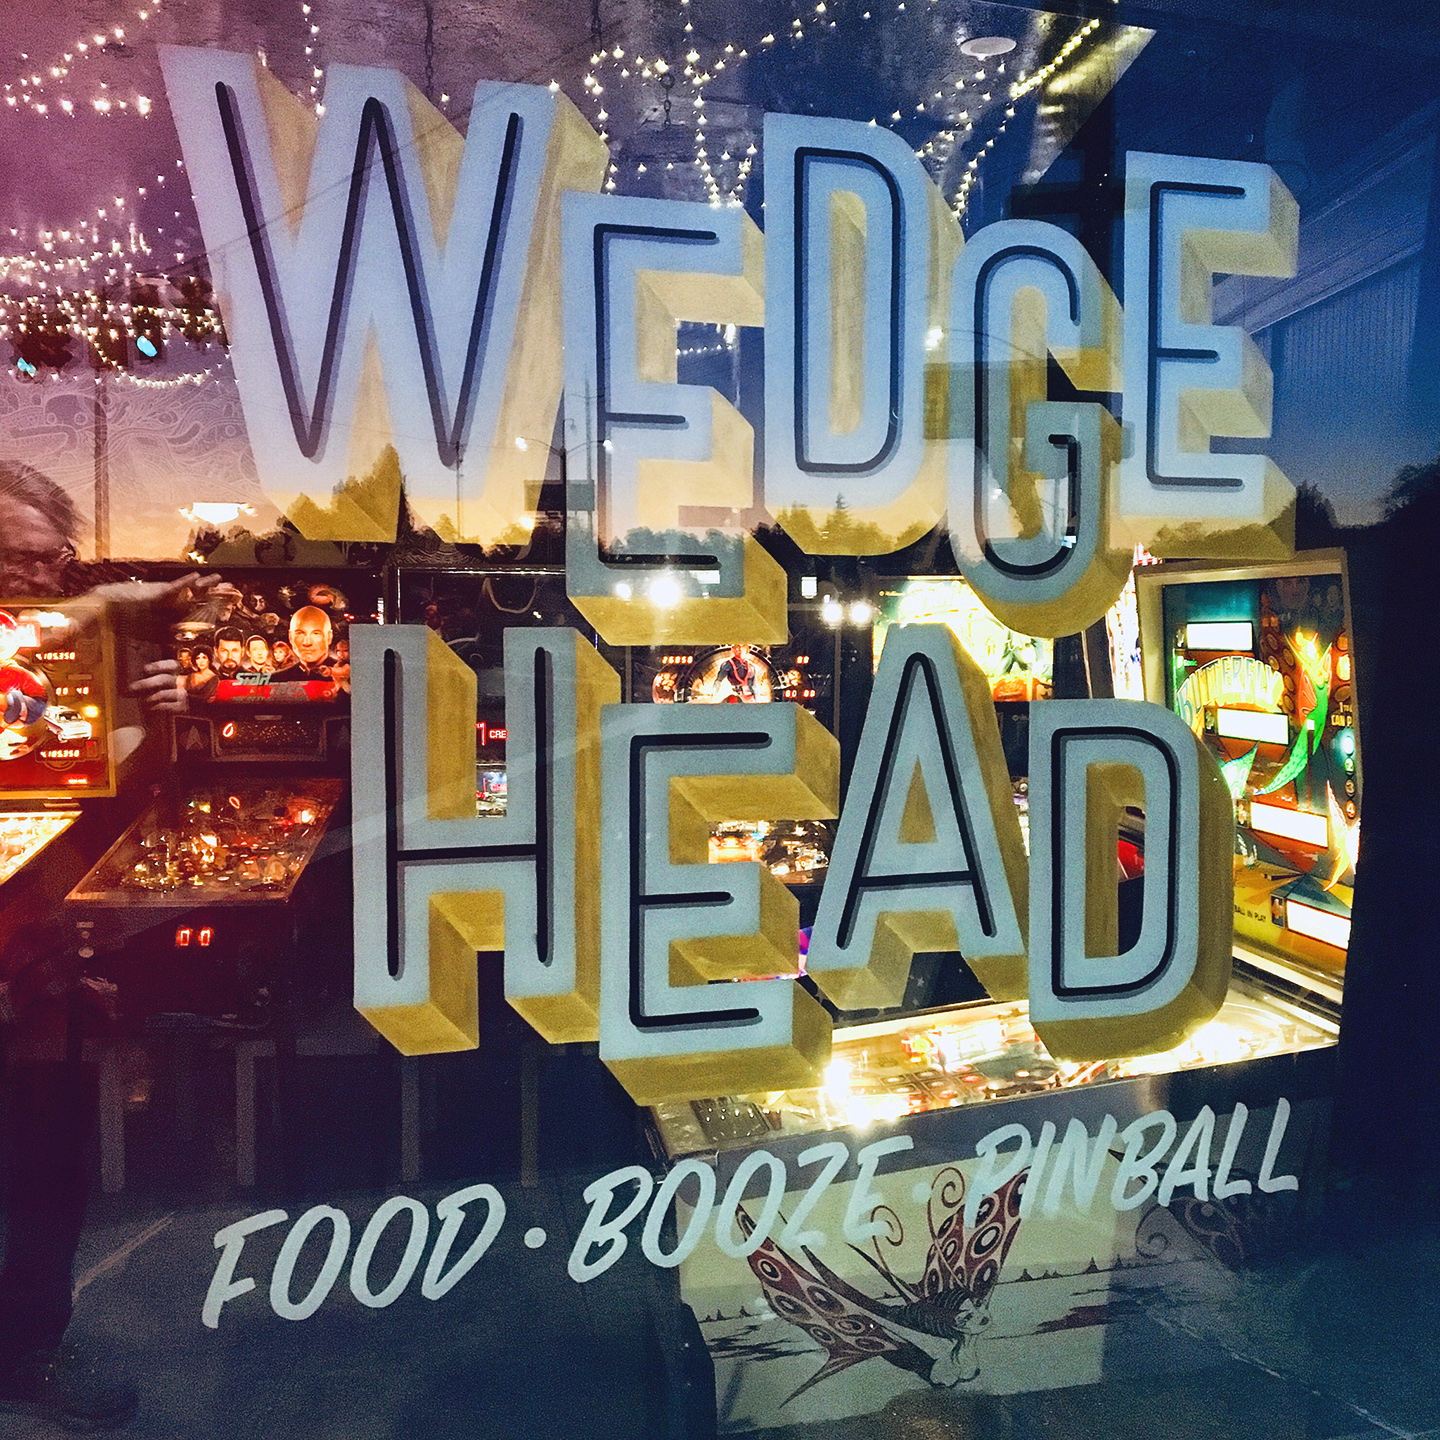 Wedgehead PDX - sunset reflected on the window